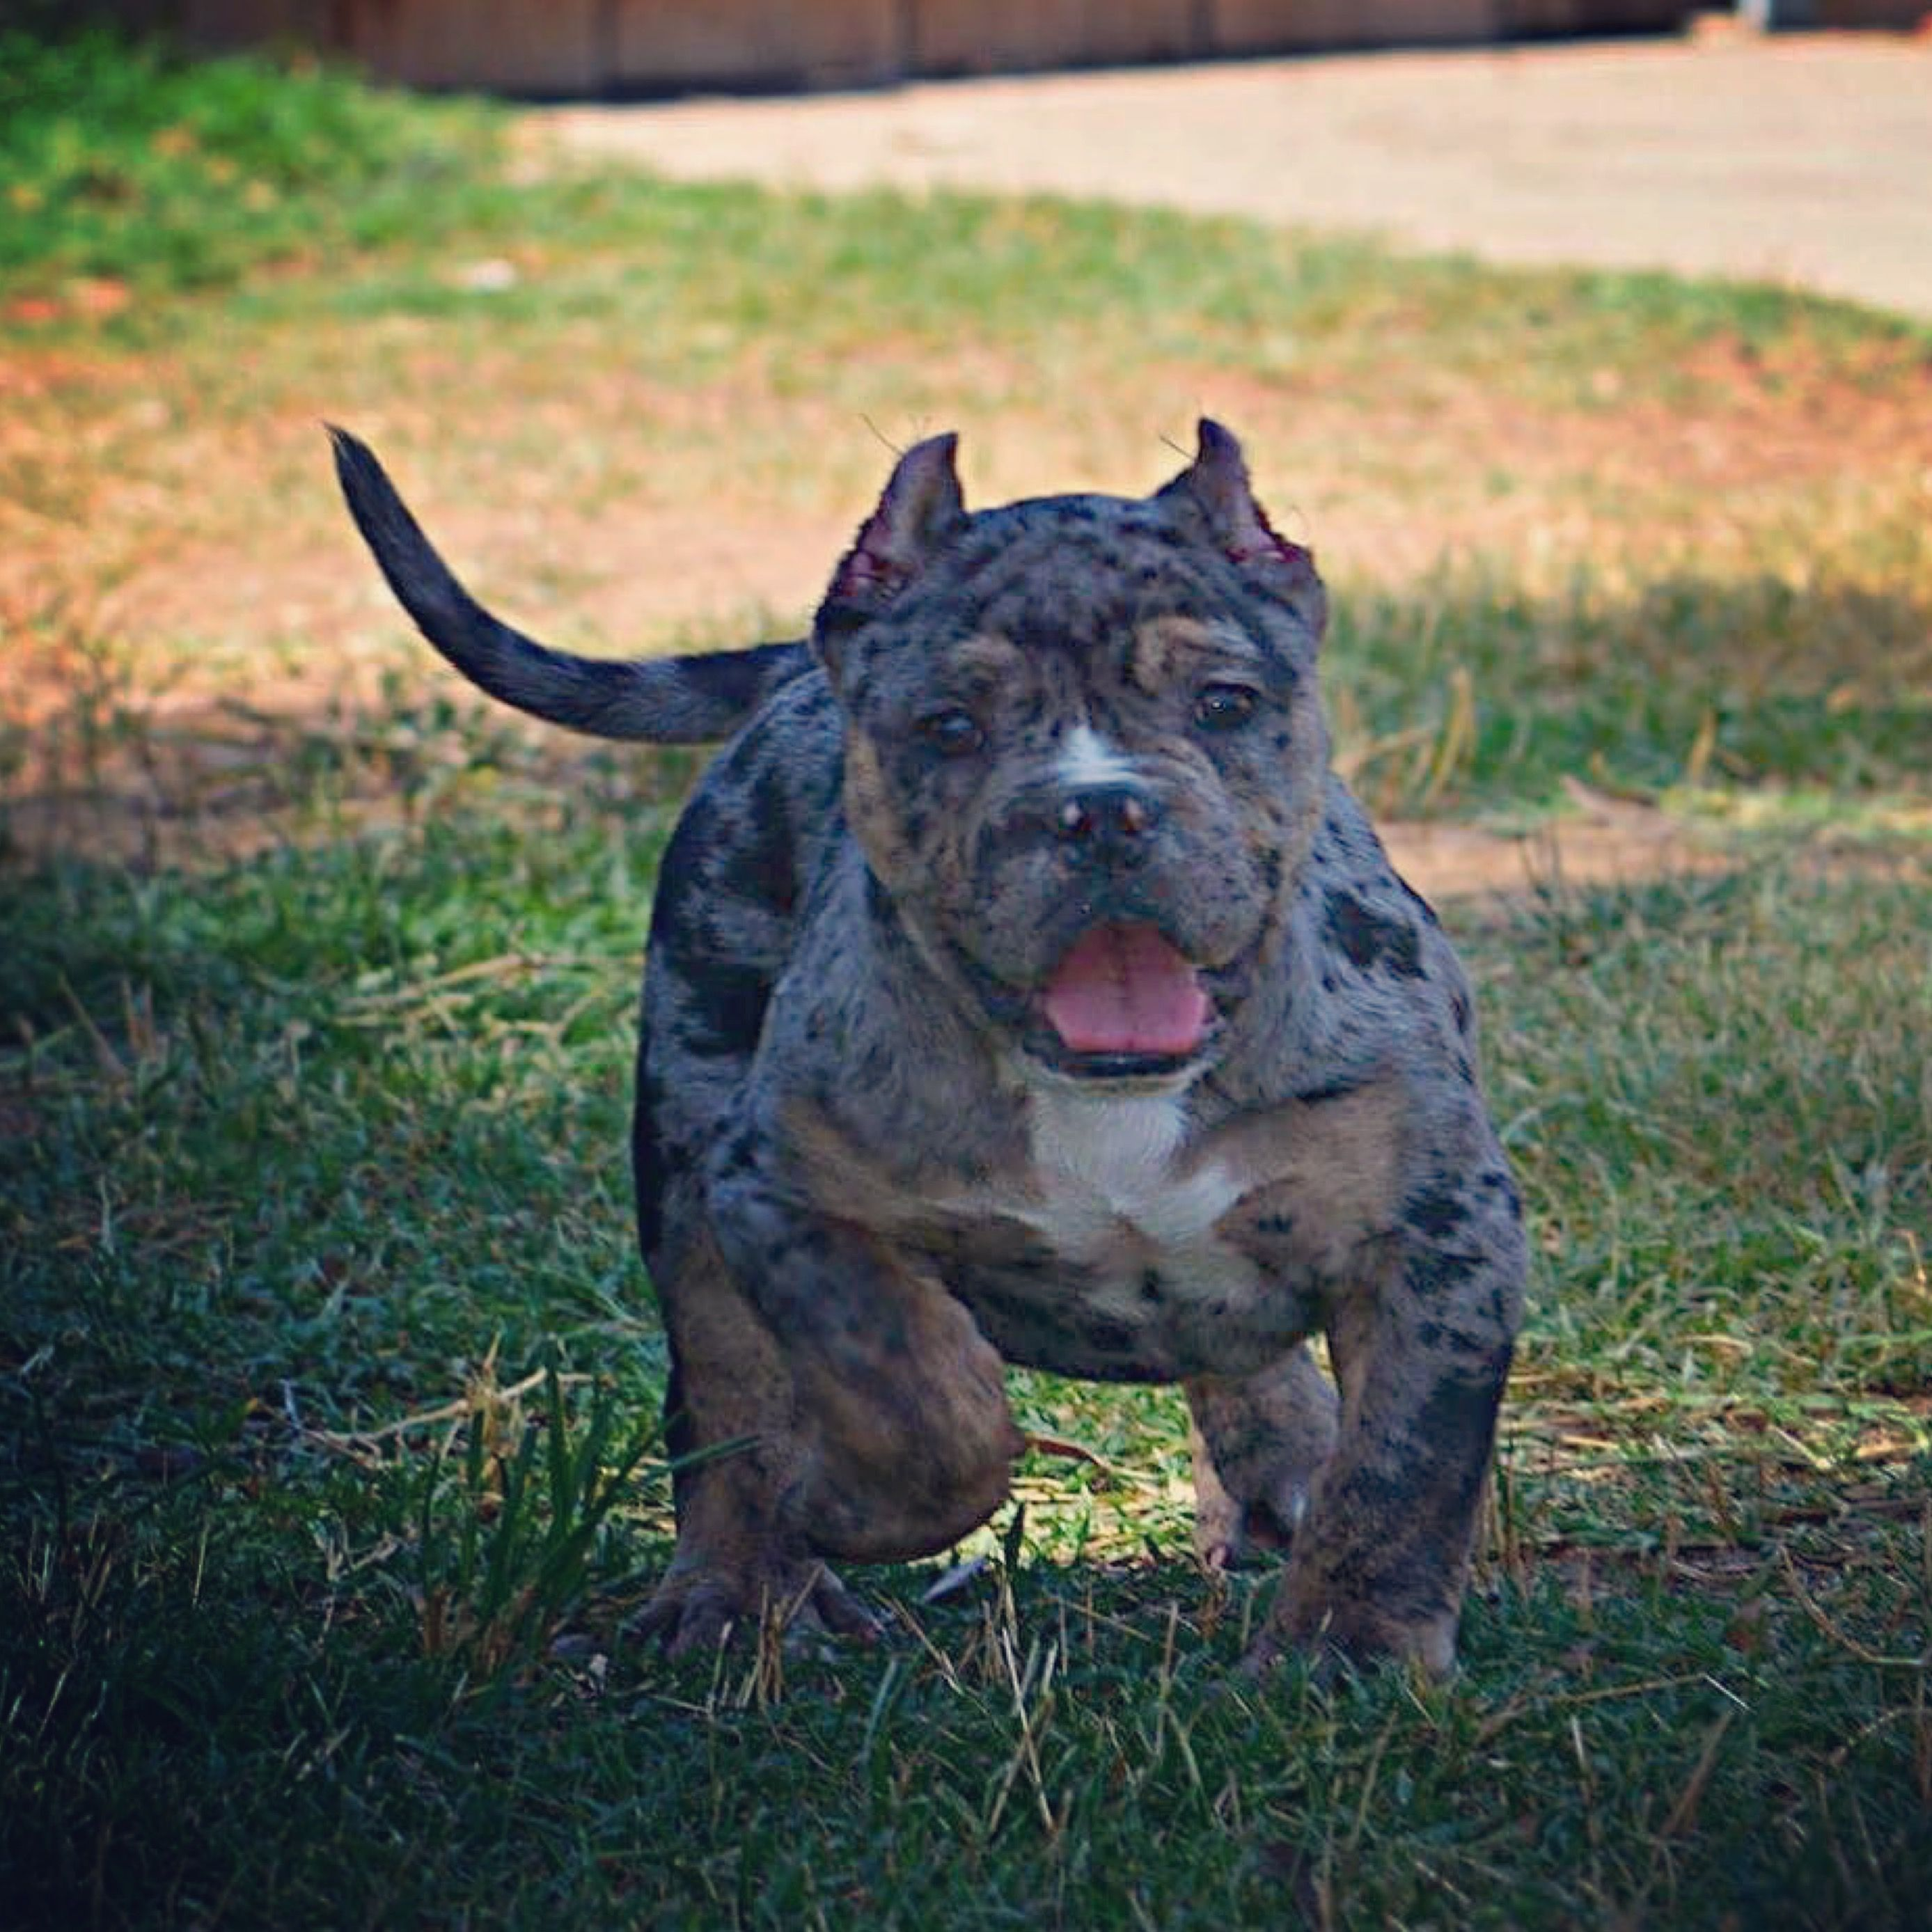 King Slayer Black Merle Tri Msb Kennels Bully Breeds Dogs Bully Breeds American Bully